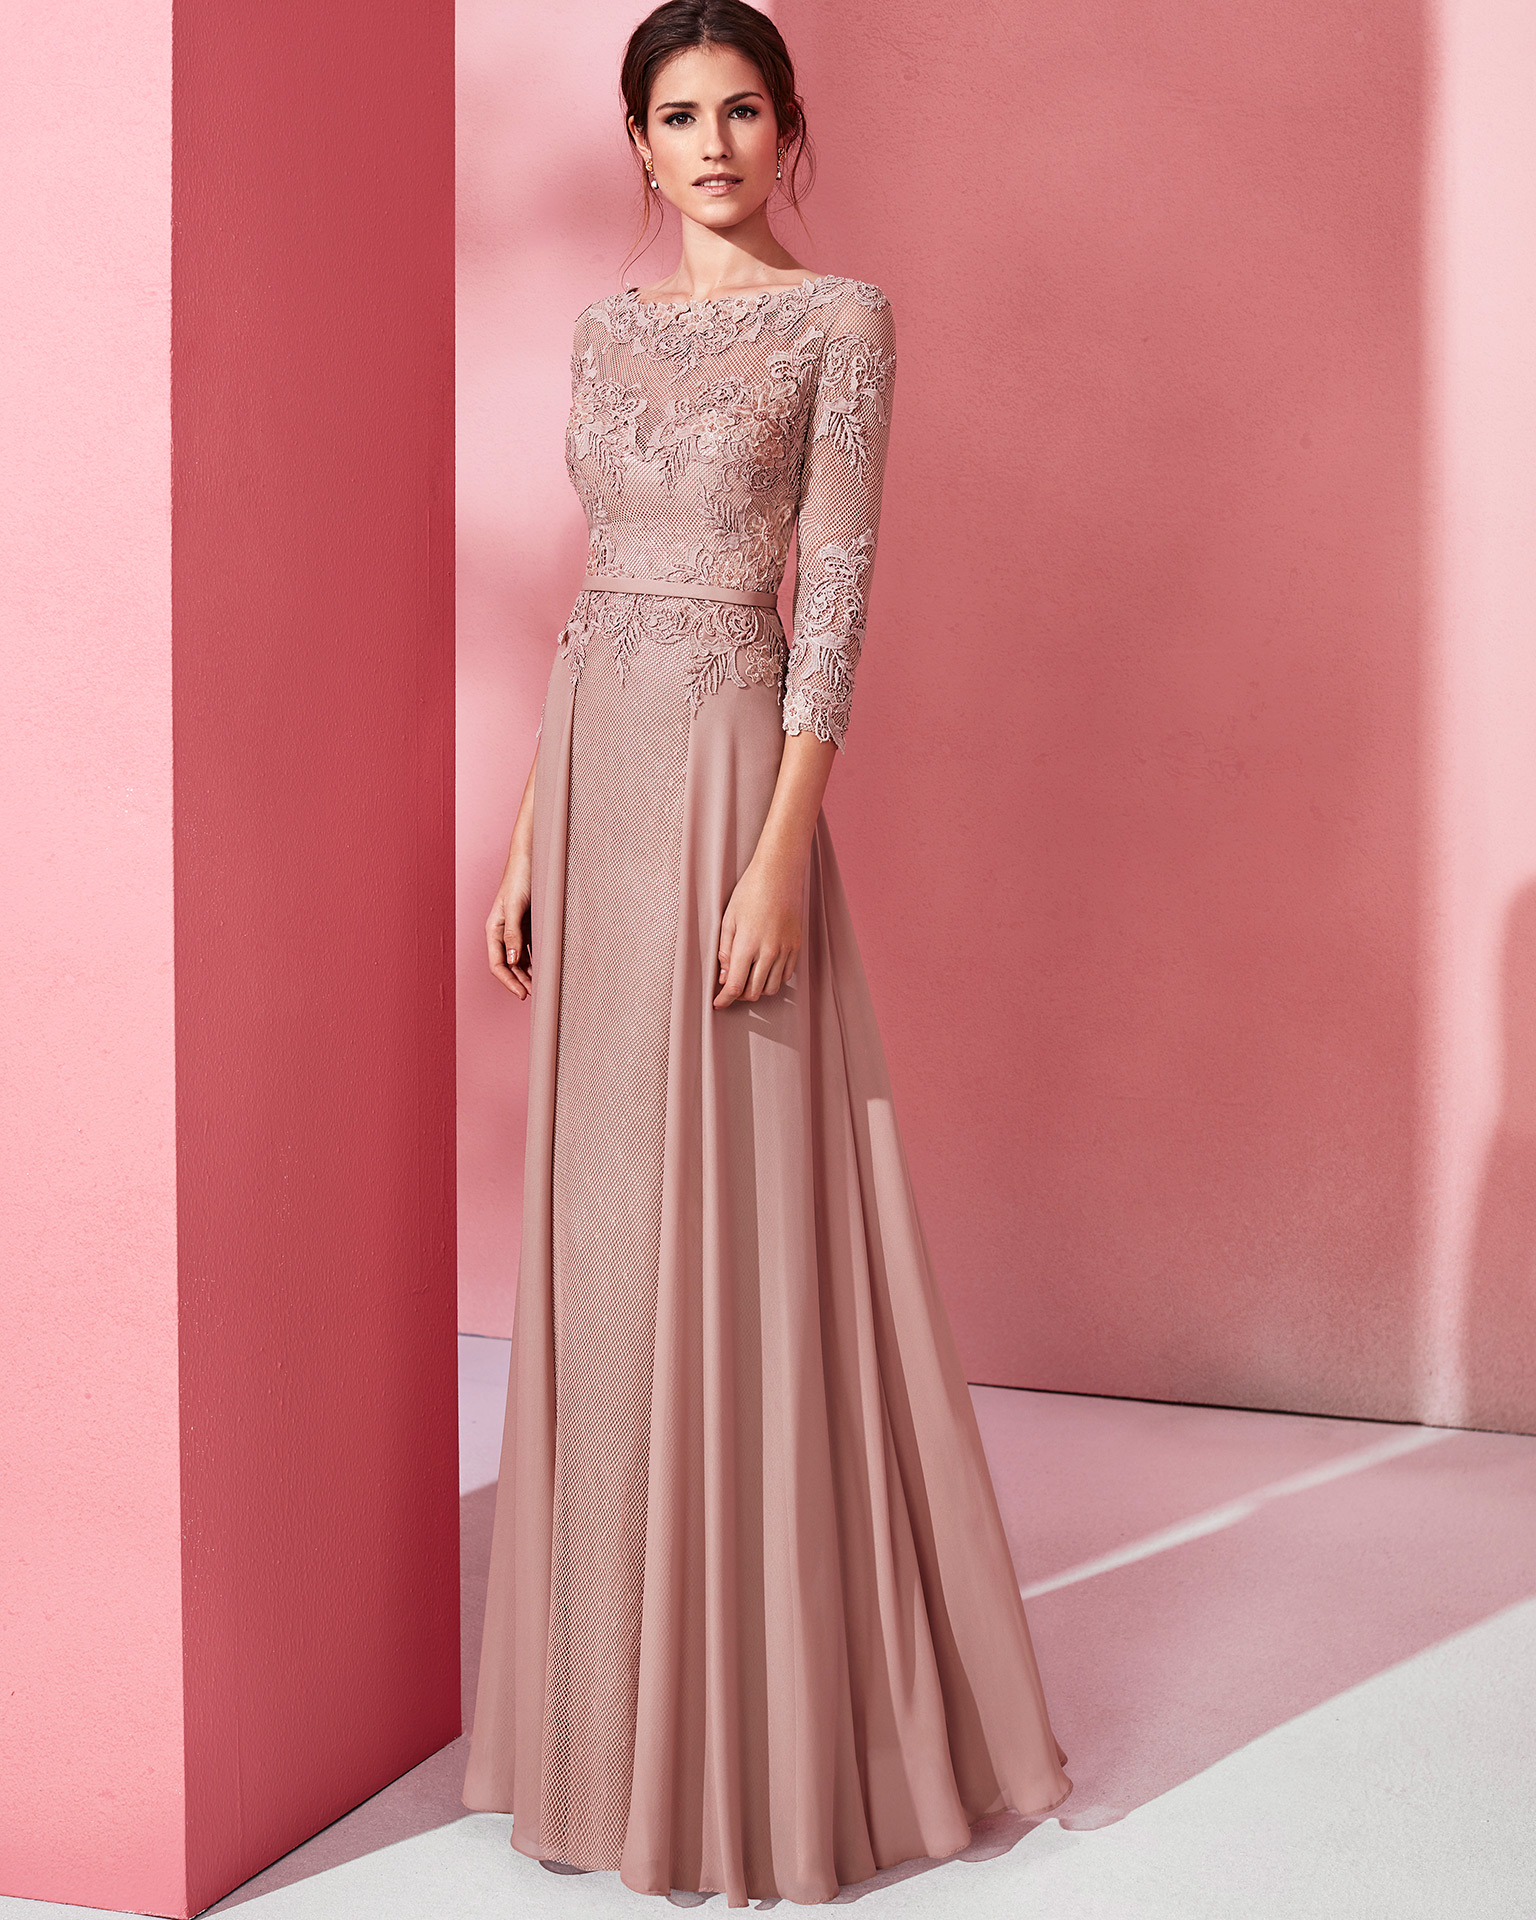 Long cocktail dress with three-quarter beaded lace and crepe Georgette sleeves. Available in pink, cobalt, beige and coral. 2018 MARFIL BARCELONA Collection.